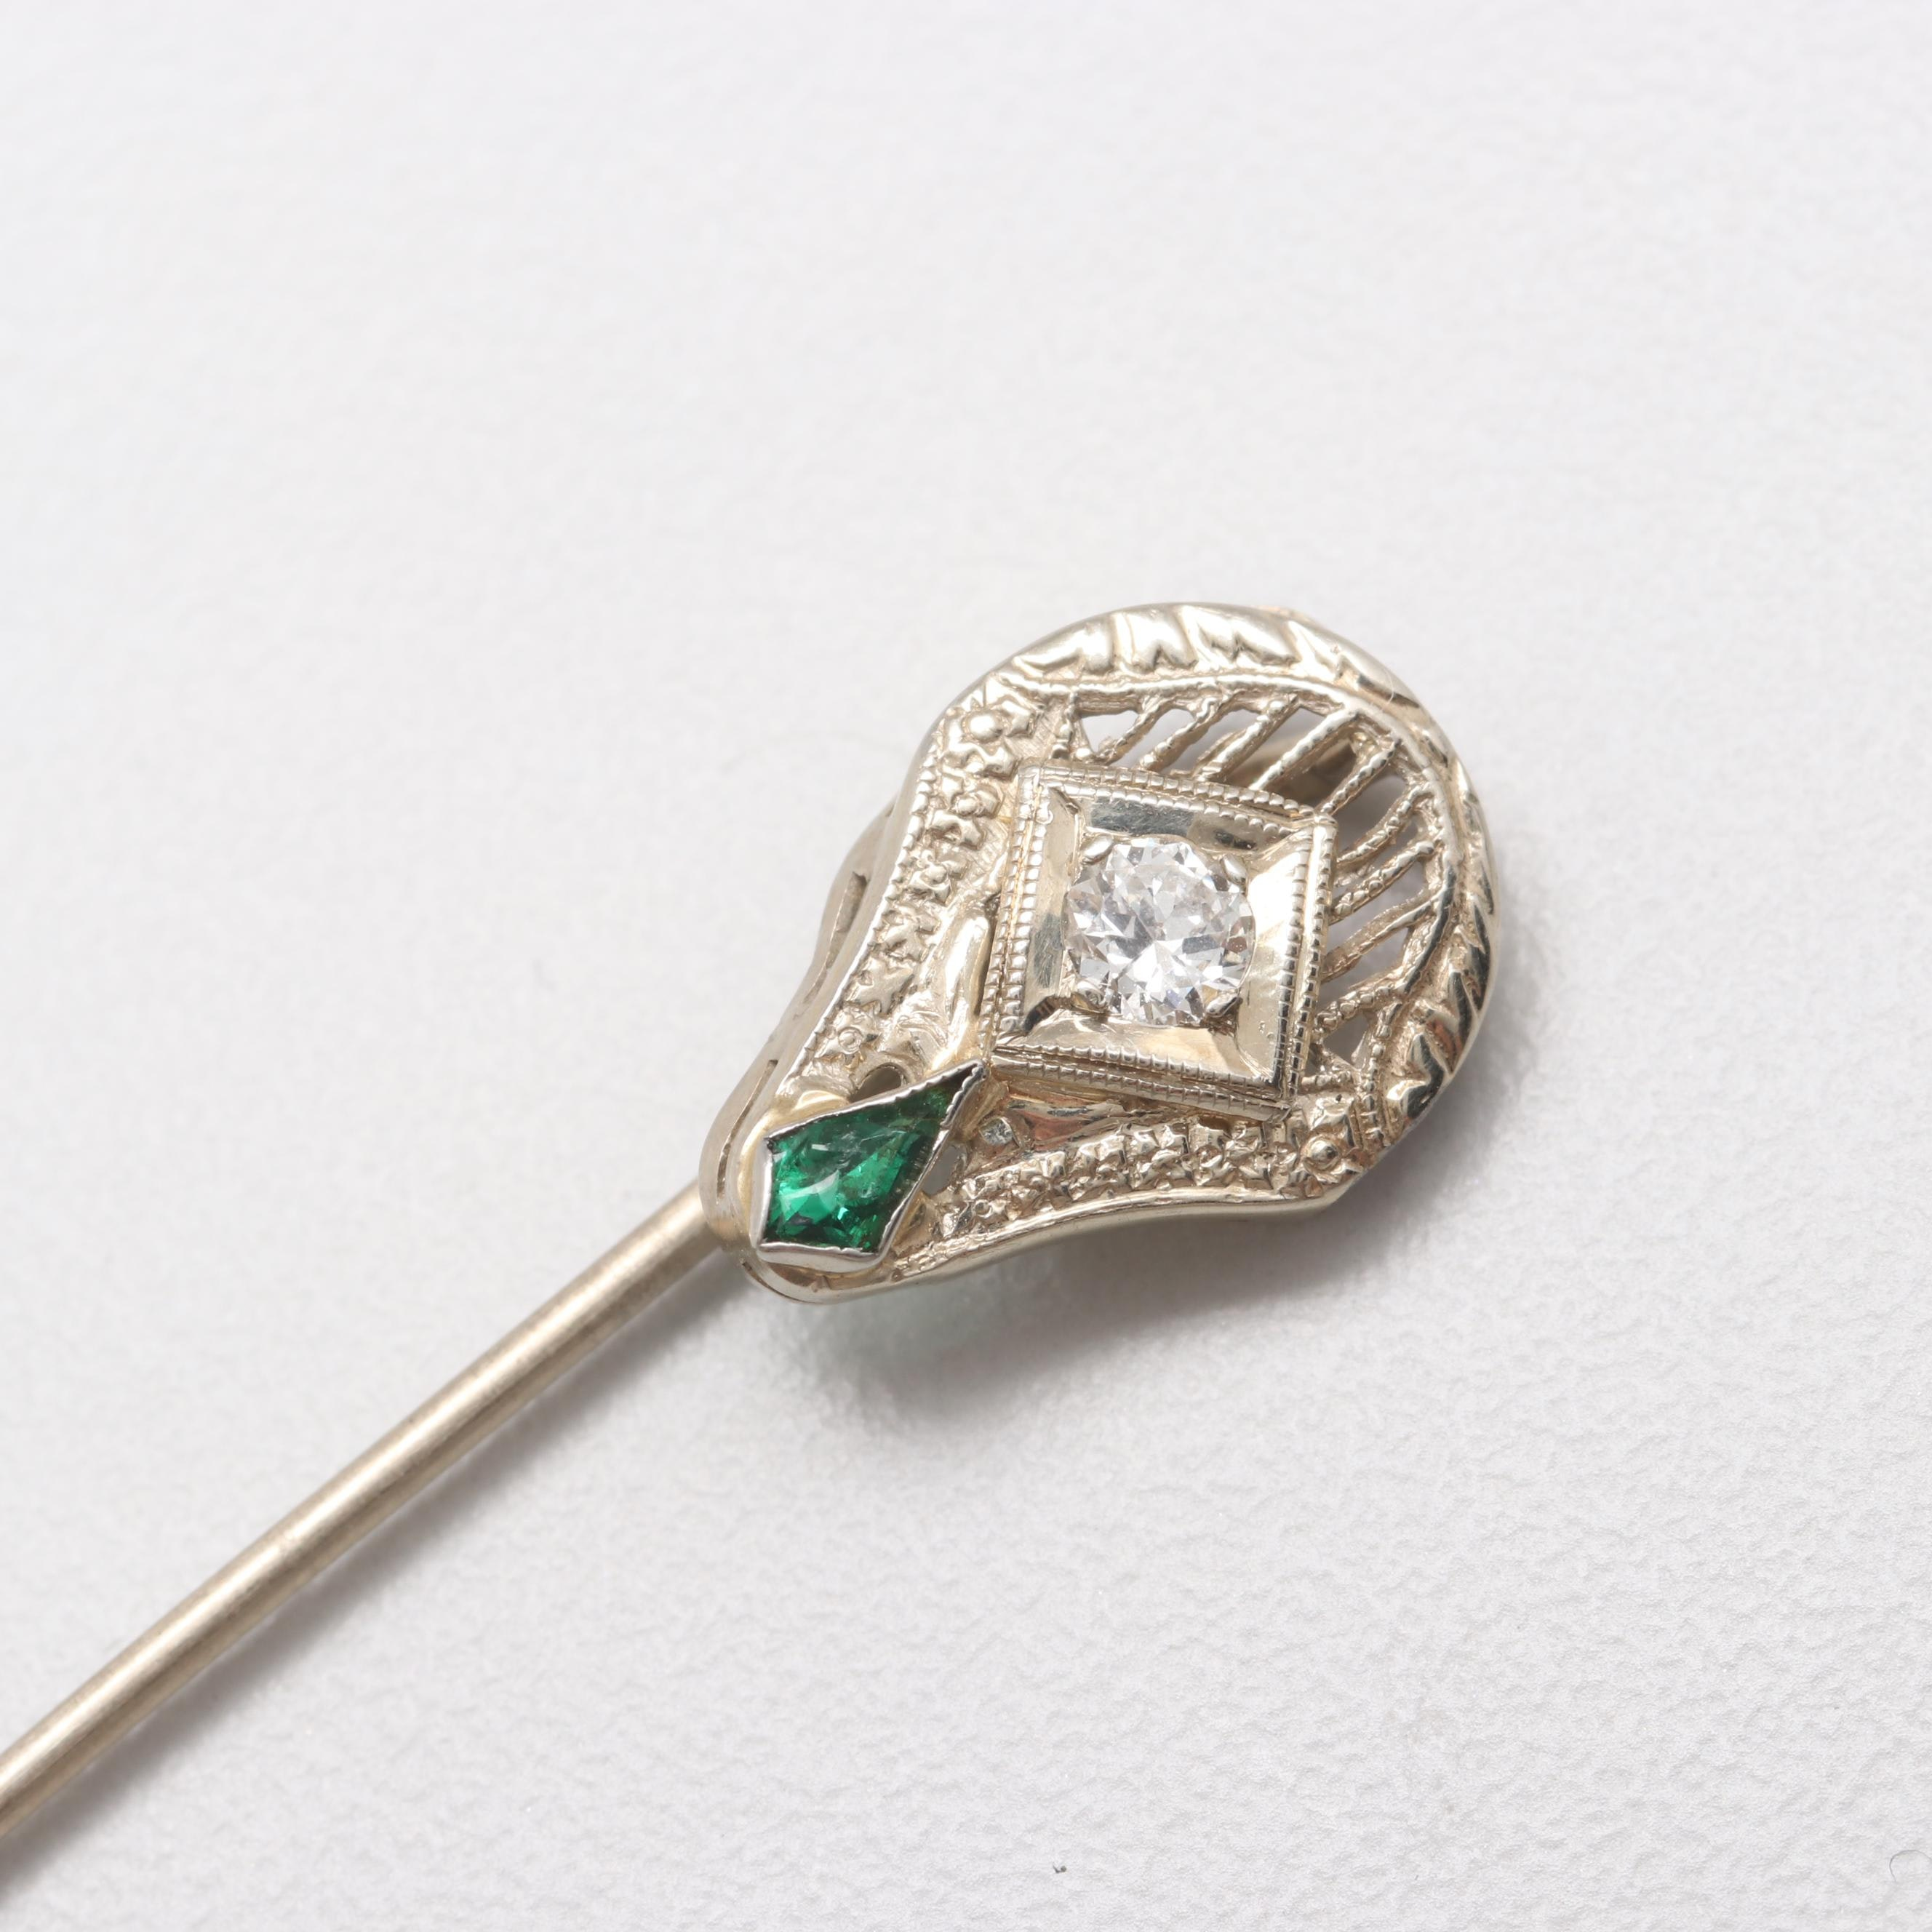 10K and 18K White Gold Diamond and Green Glass Stick Pin